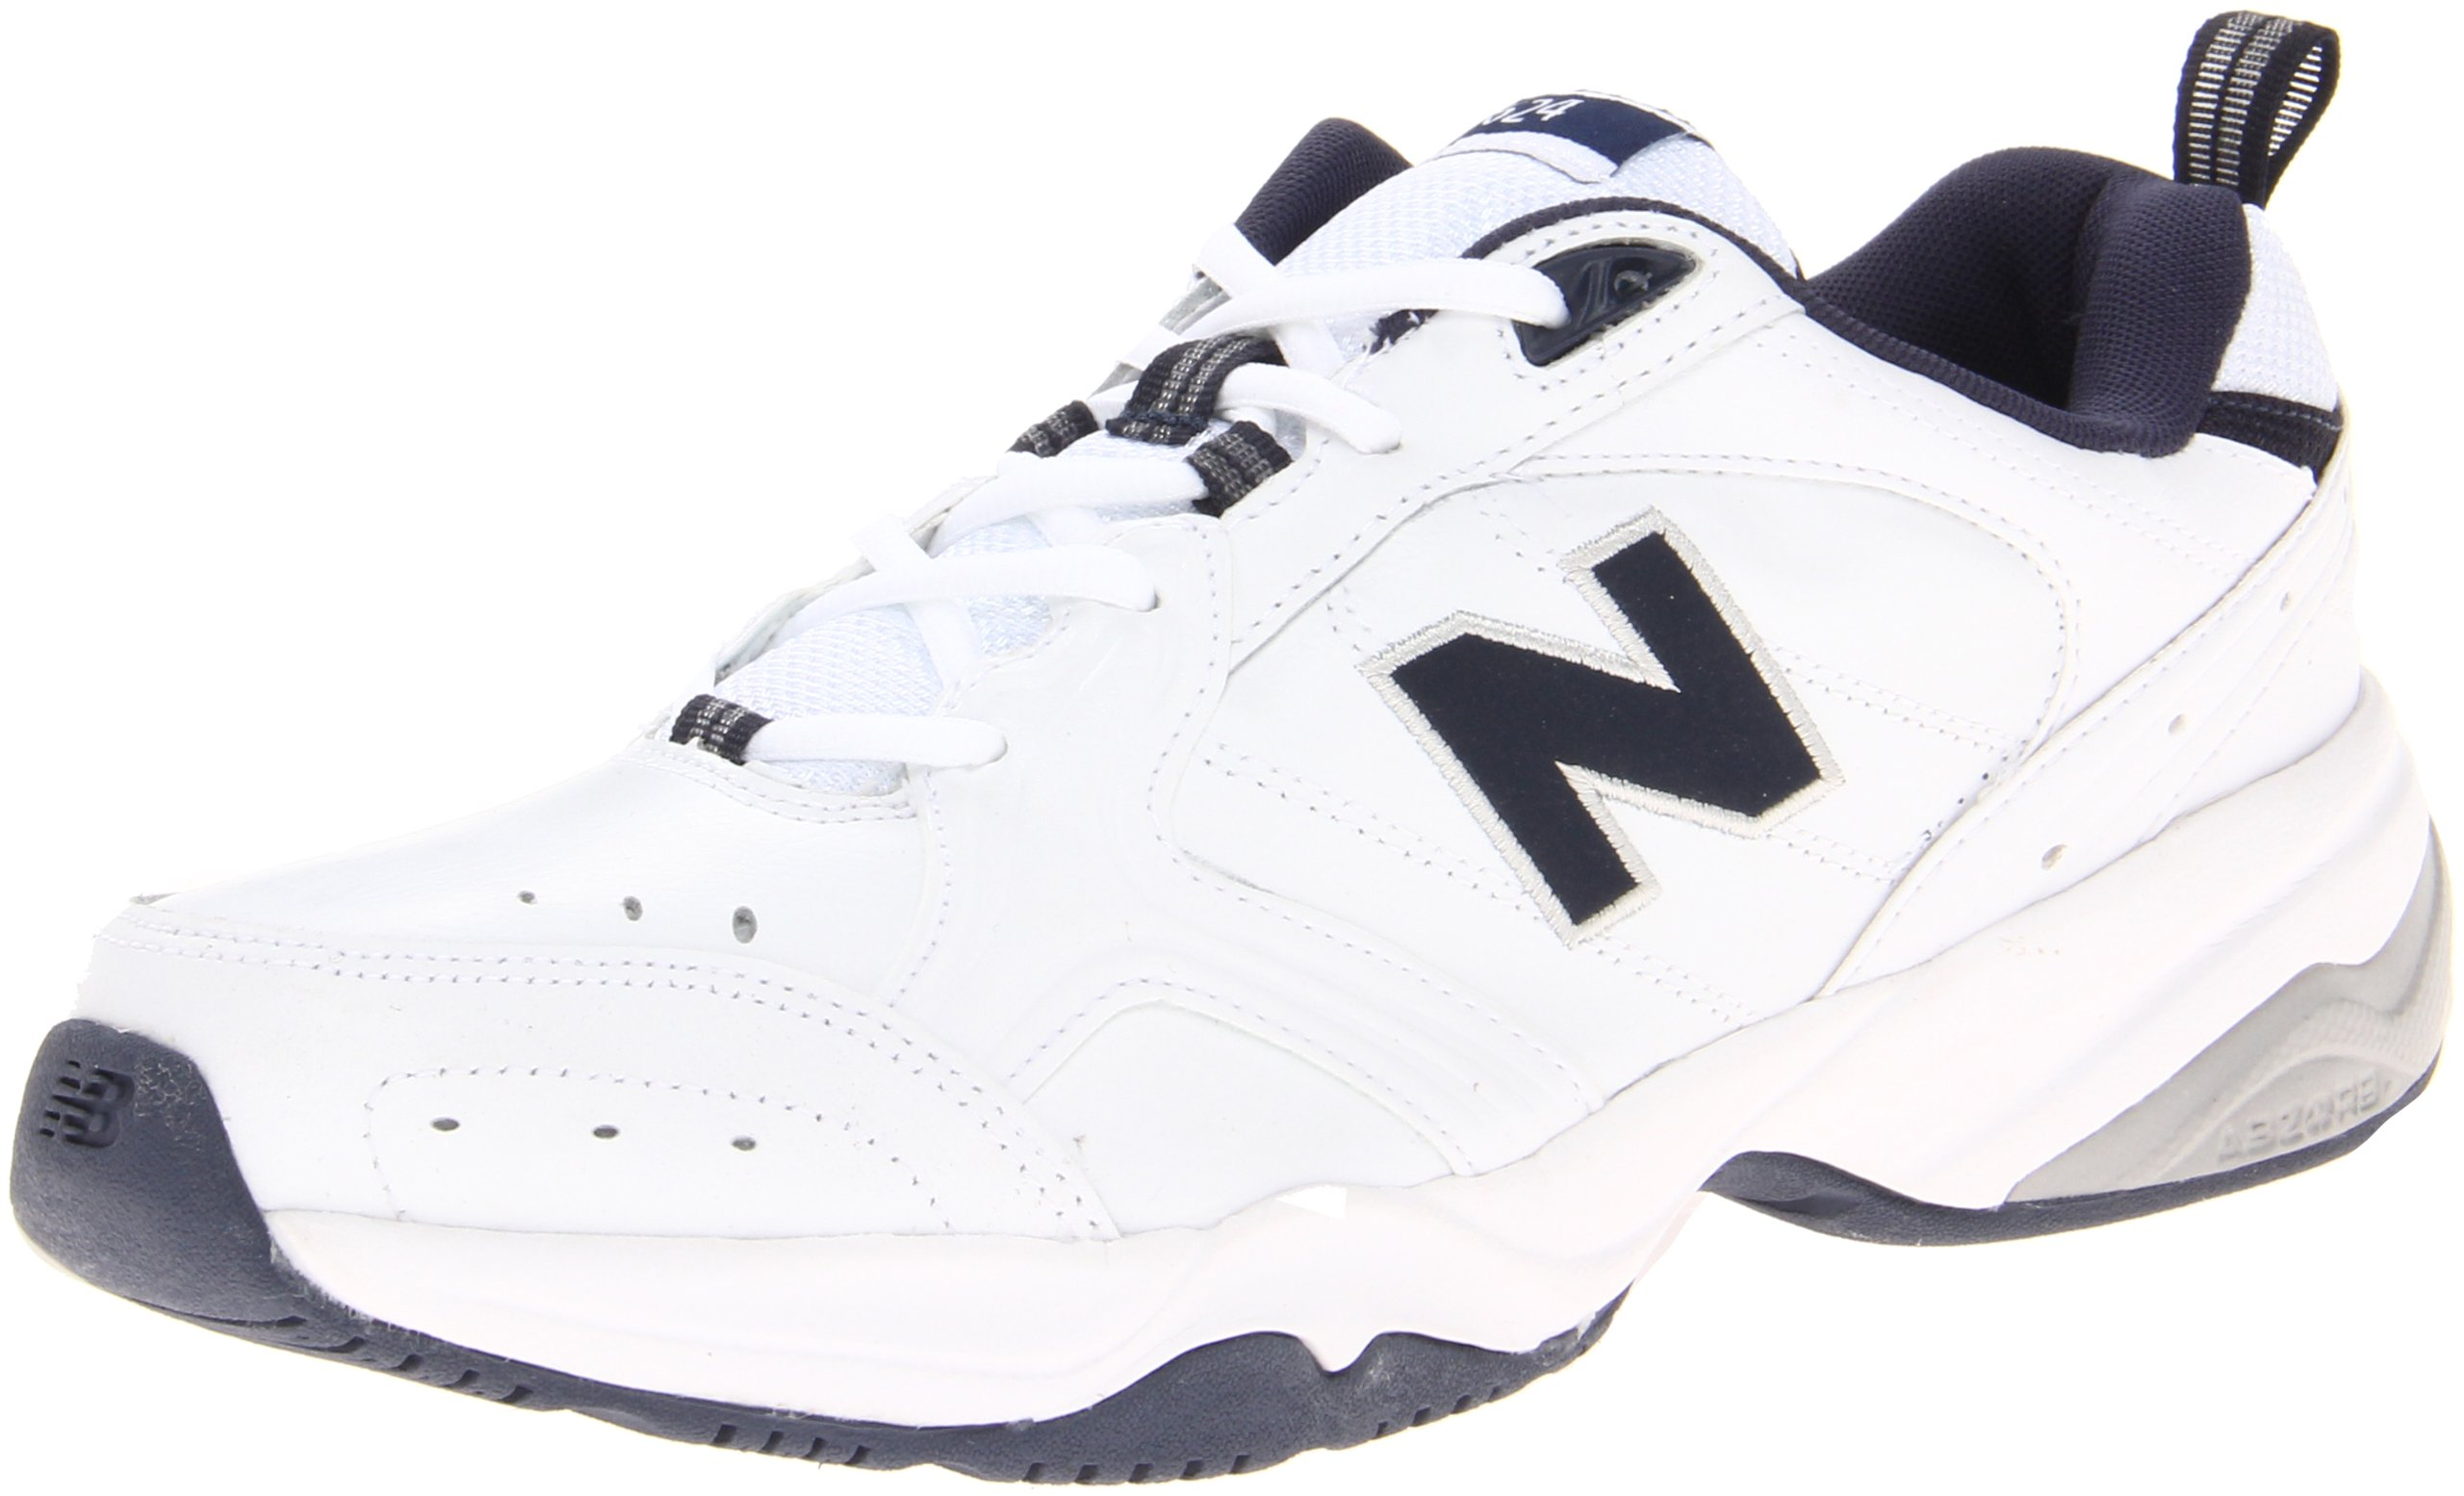 New Balance Men's MX624v2 Casual Comfort Training Shoe, White/Navy, 10 D US